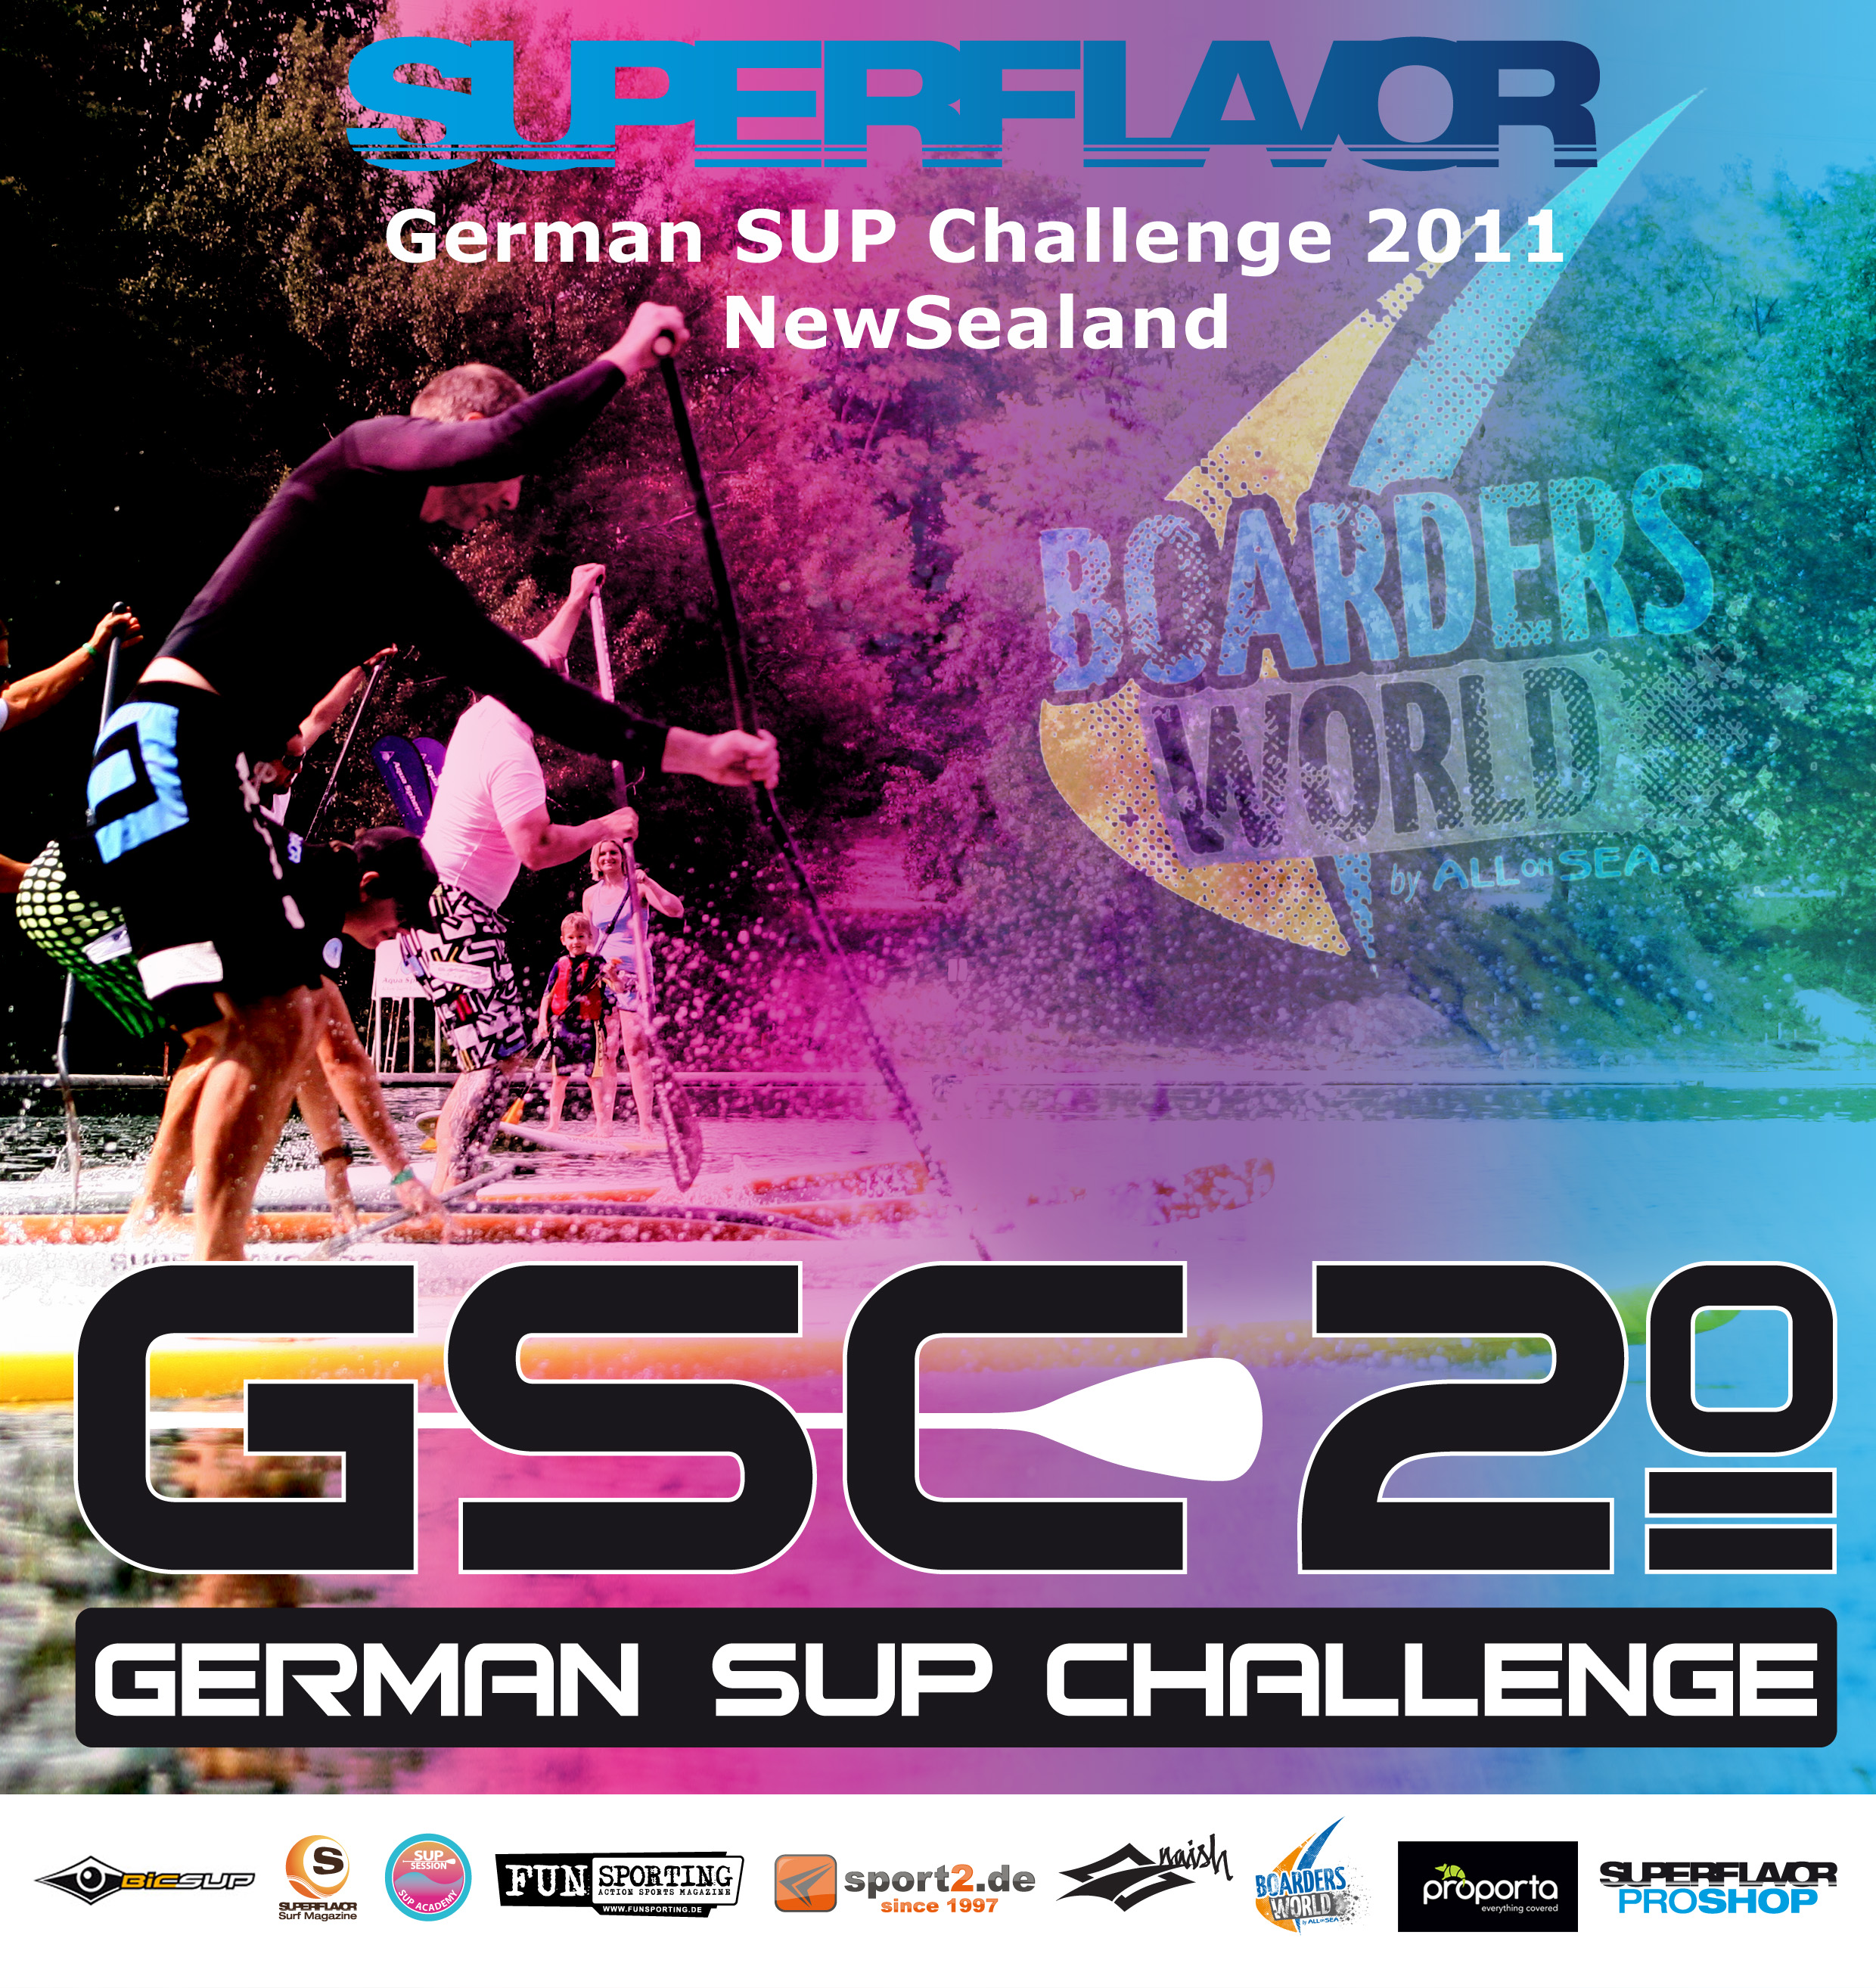 newsealand-german sup challenge flyer